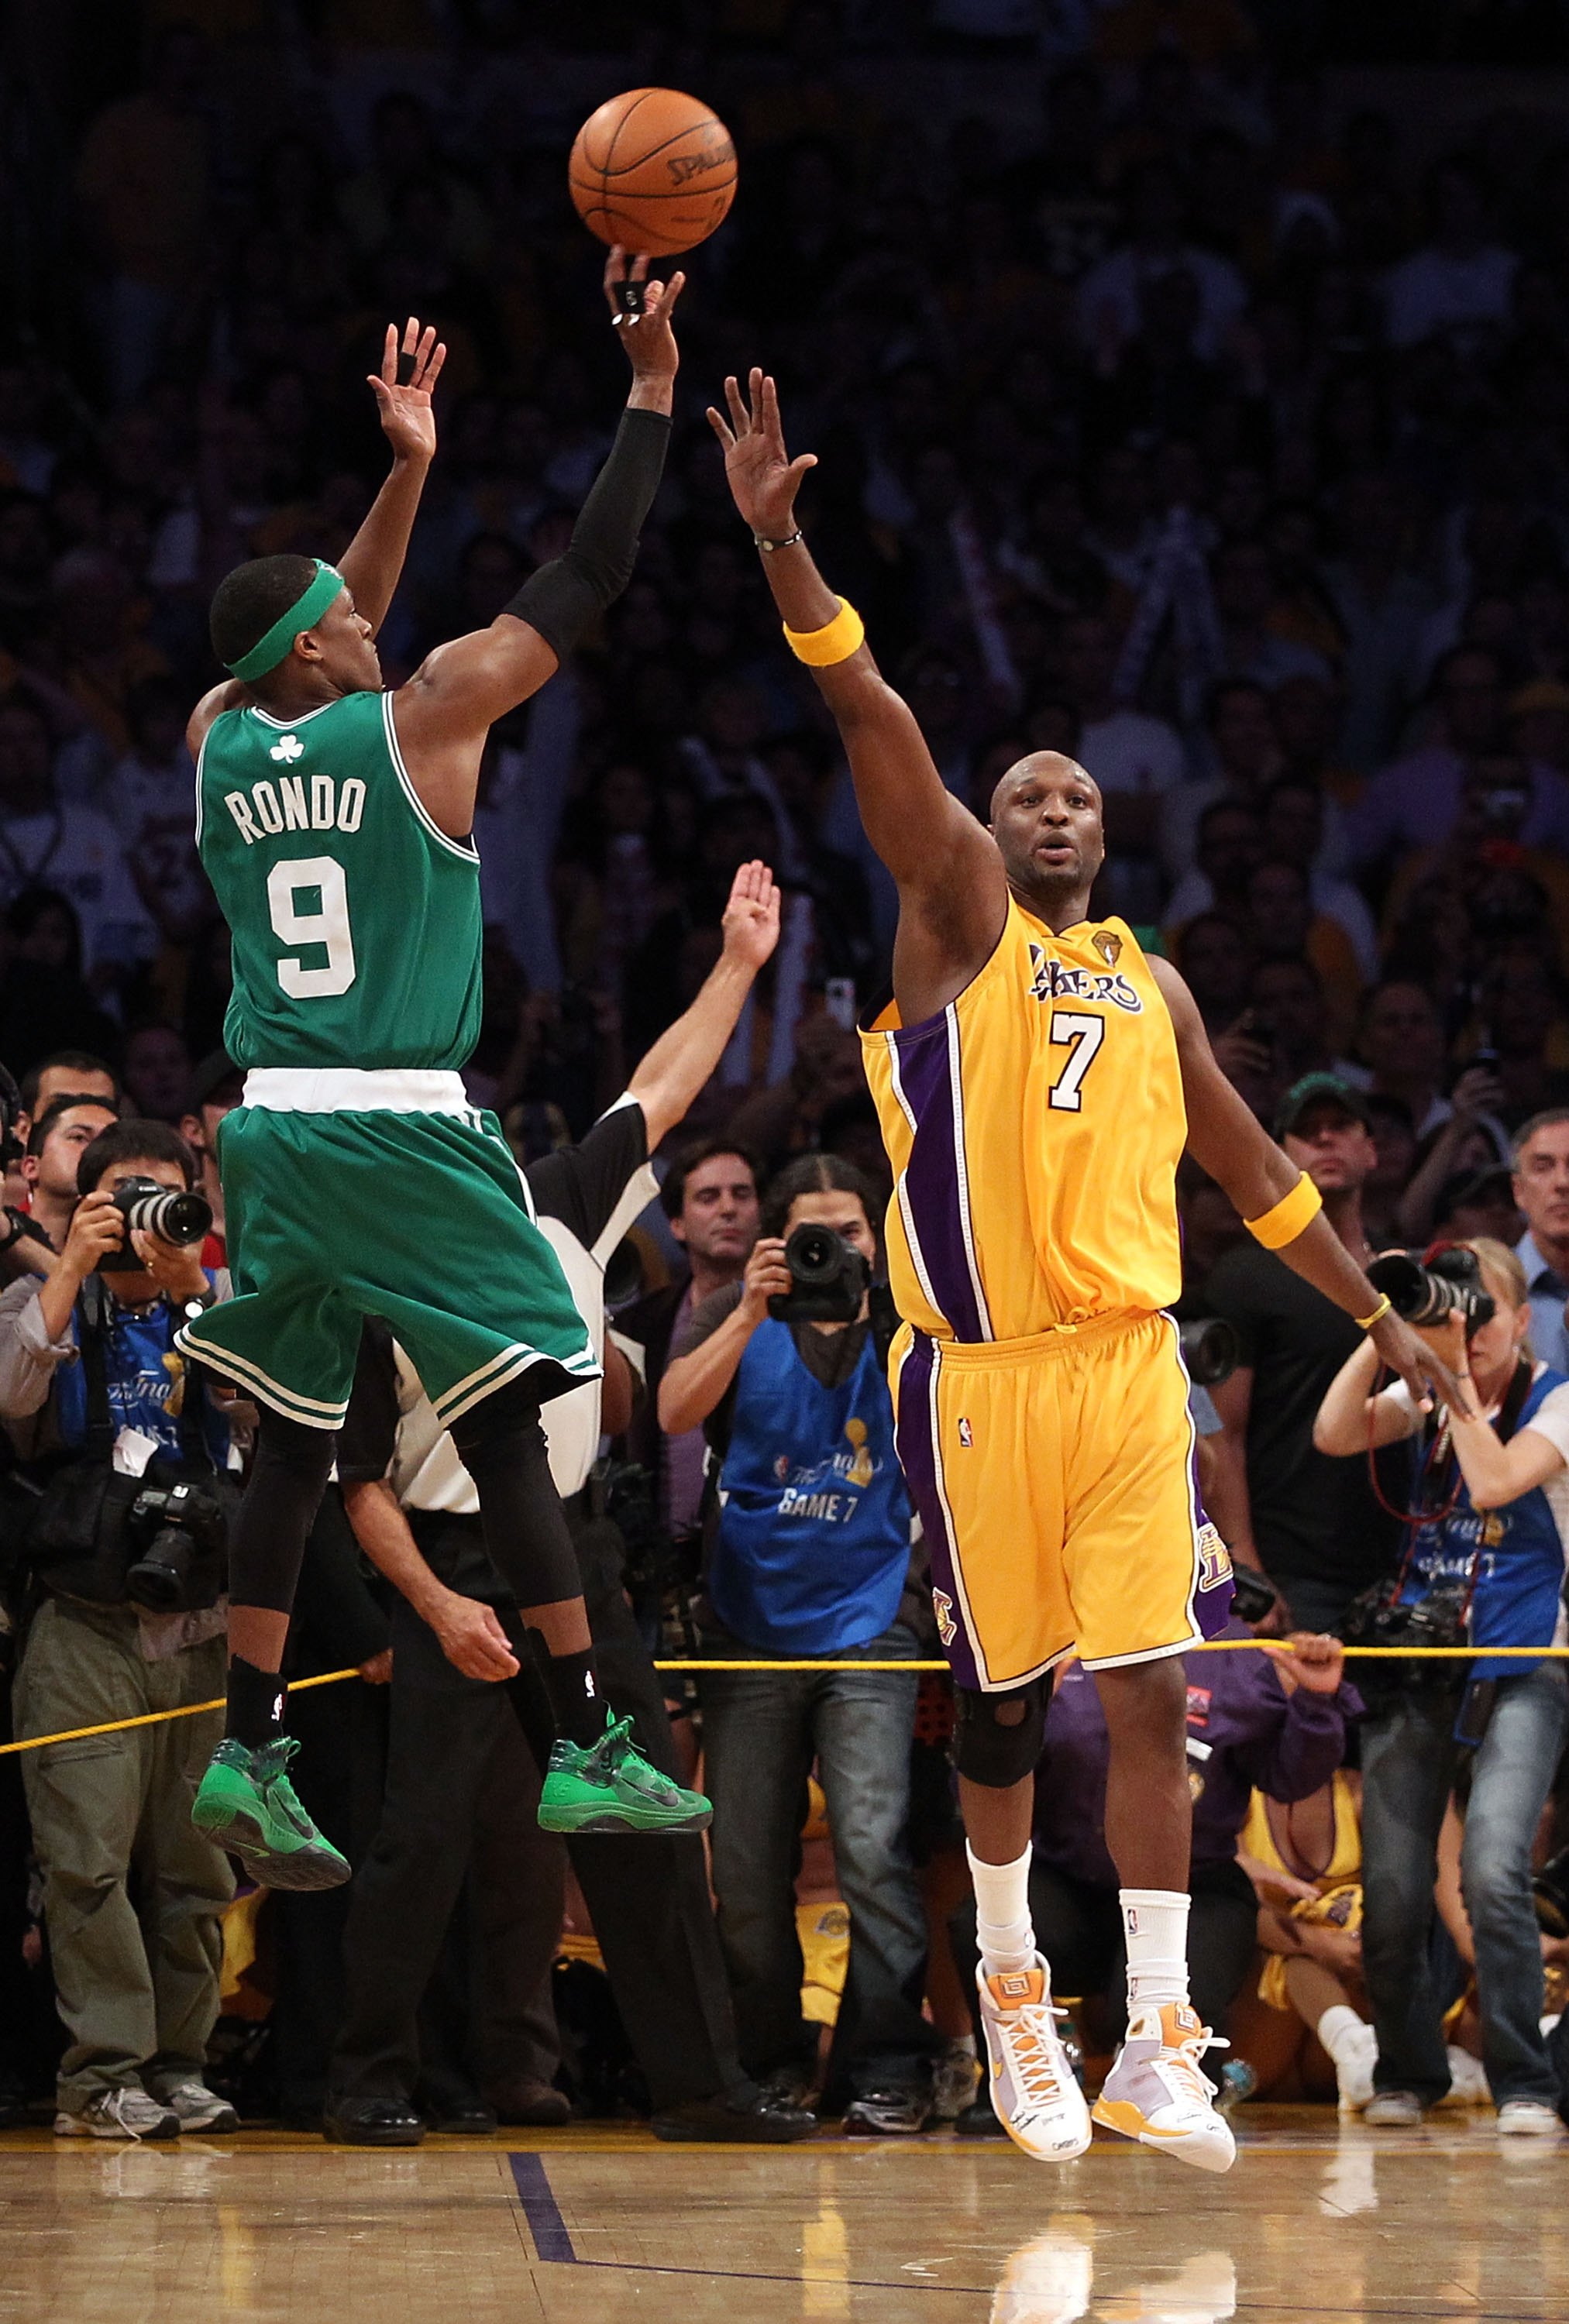 LOS ANGELES, CA - JUNE 17:  Rajon Rondo #9 of the Boston Celtics shoots a three-pointer in the final seconds over Lamar Odom #7 of the Los Angeles Lakers before the Celtics loss to the Los Angeles Lakers in Game Seven of the 2010 NBA Finals at Staples Cen